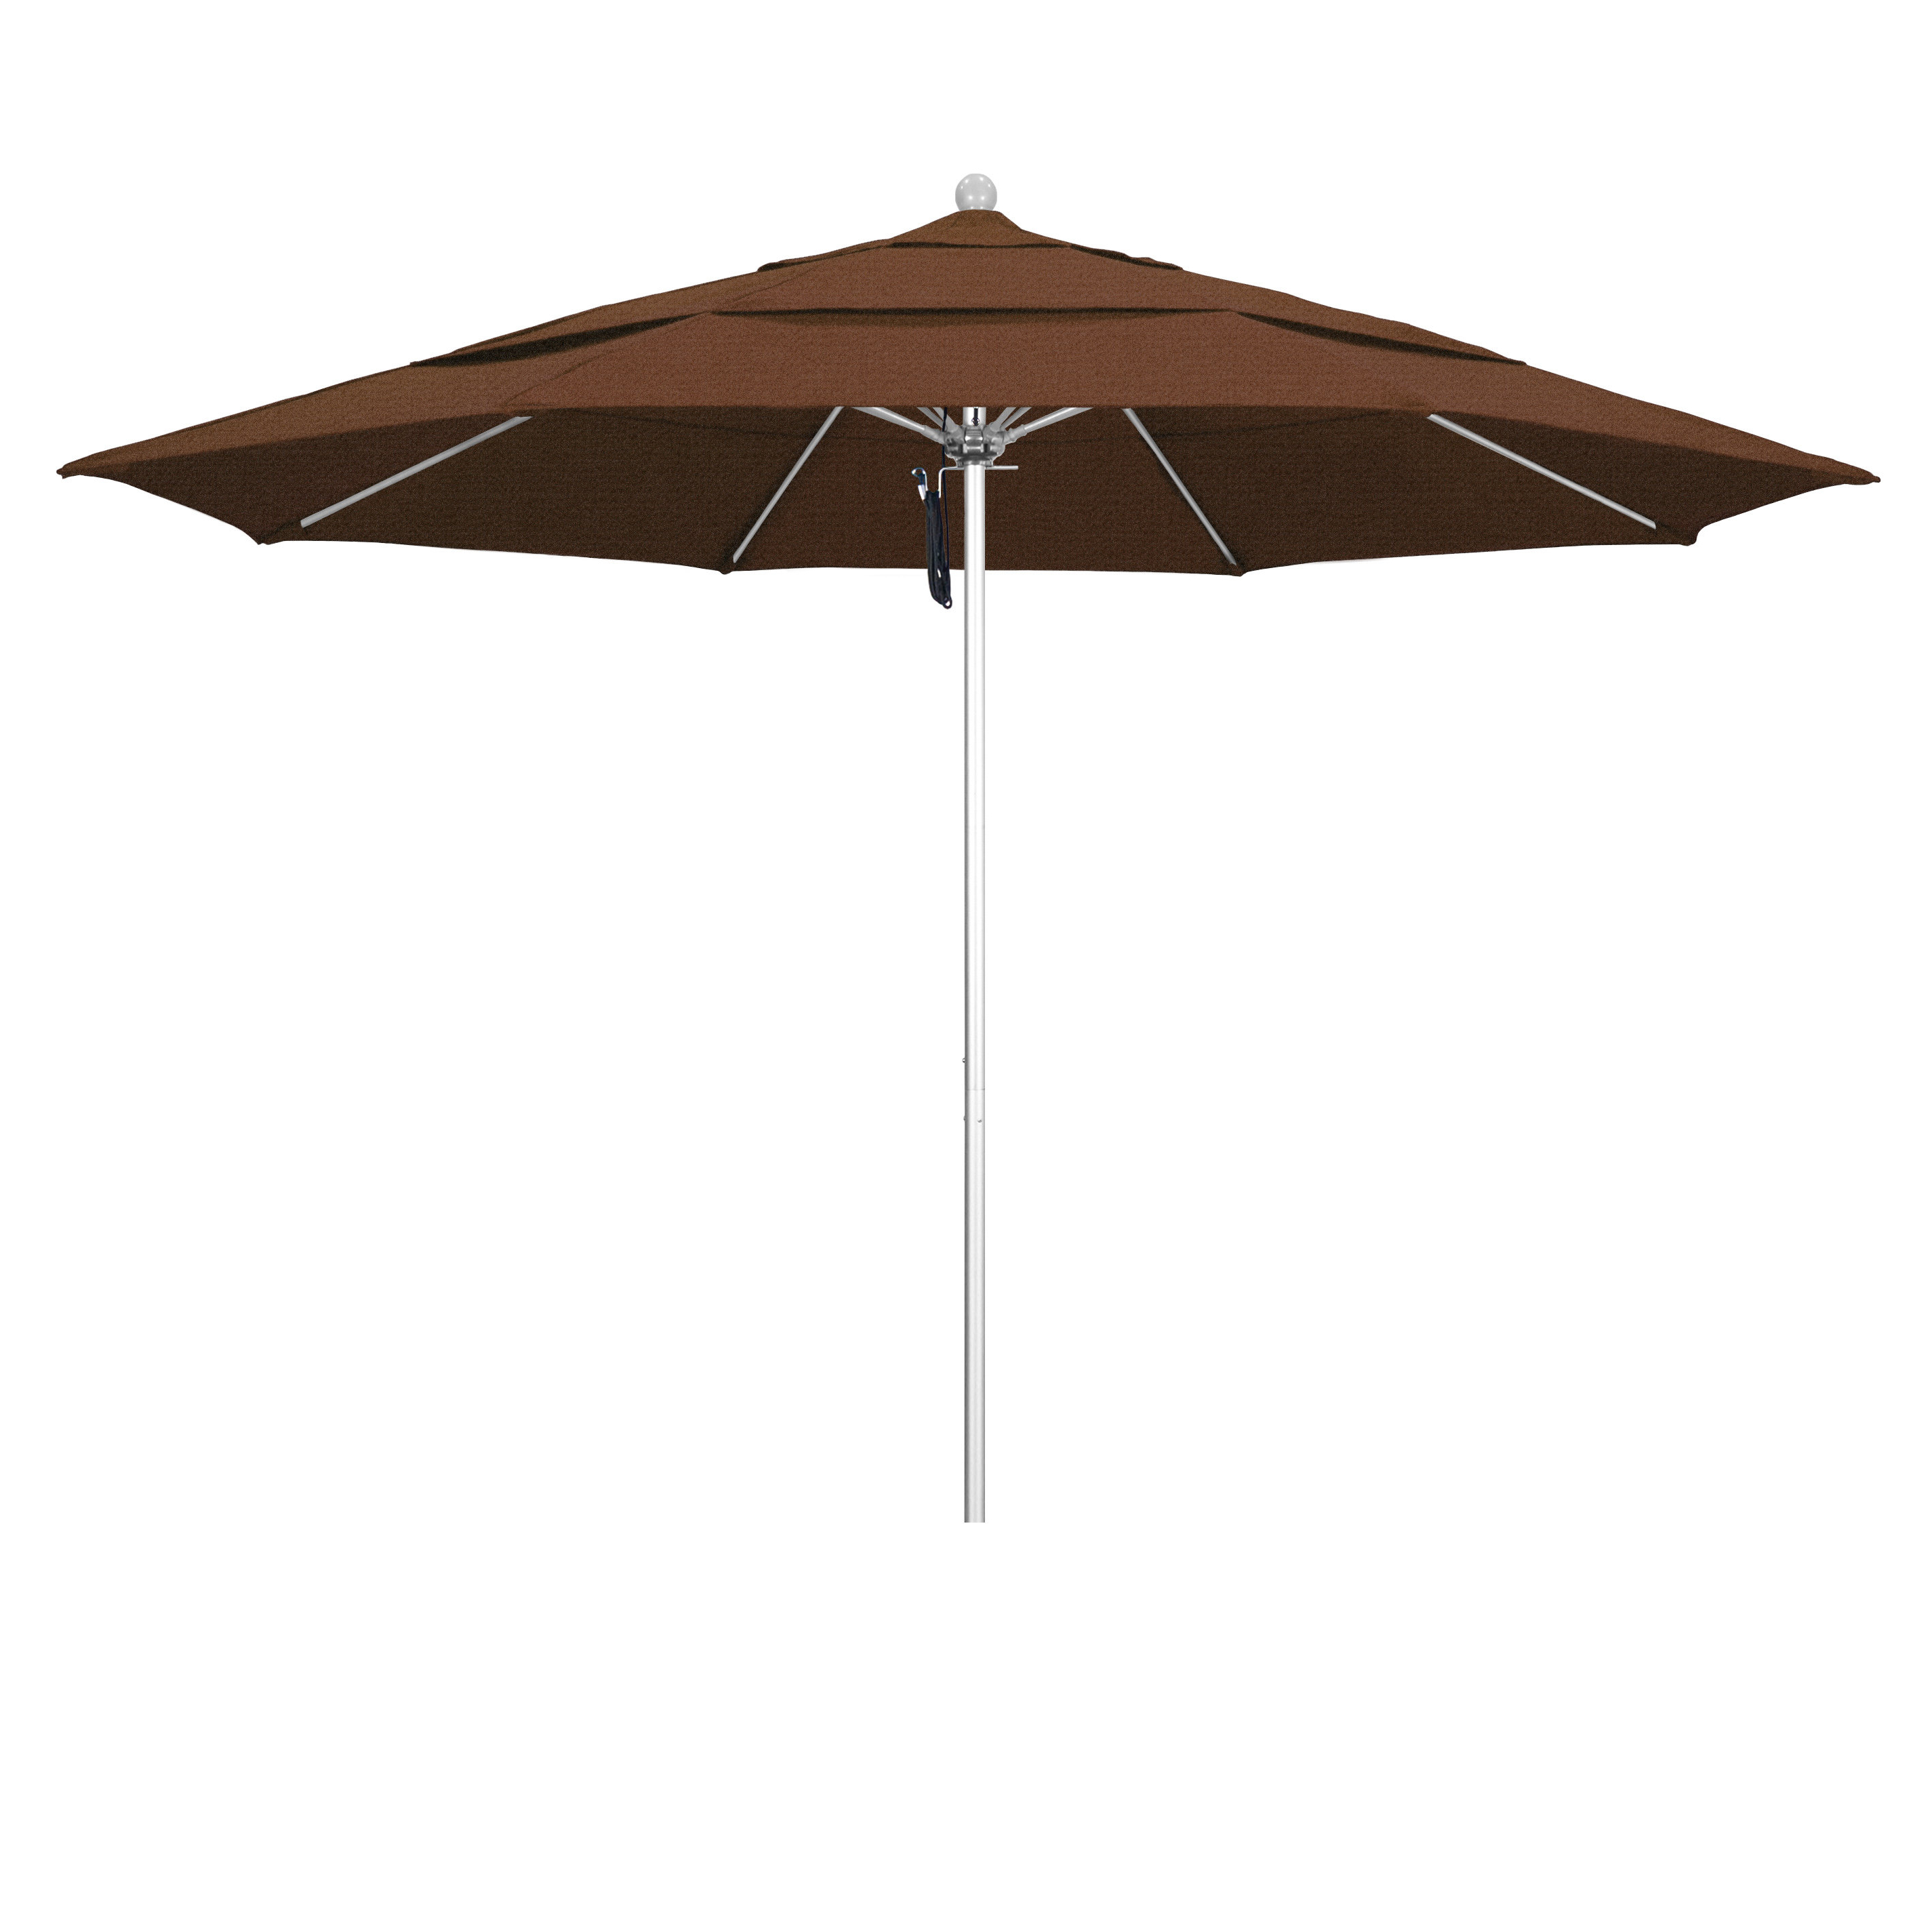 Best And Newest Caravelle Market Umbrellas Within Caravelle 11' Market Umbrella (Gallery 5 of 20)